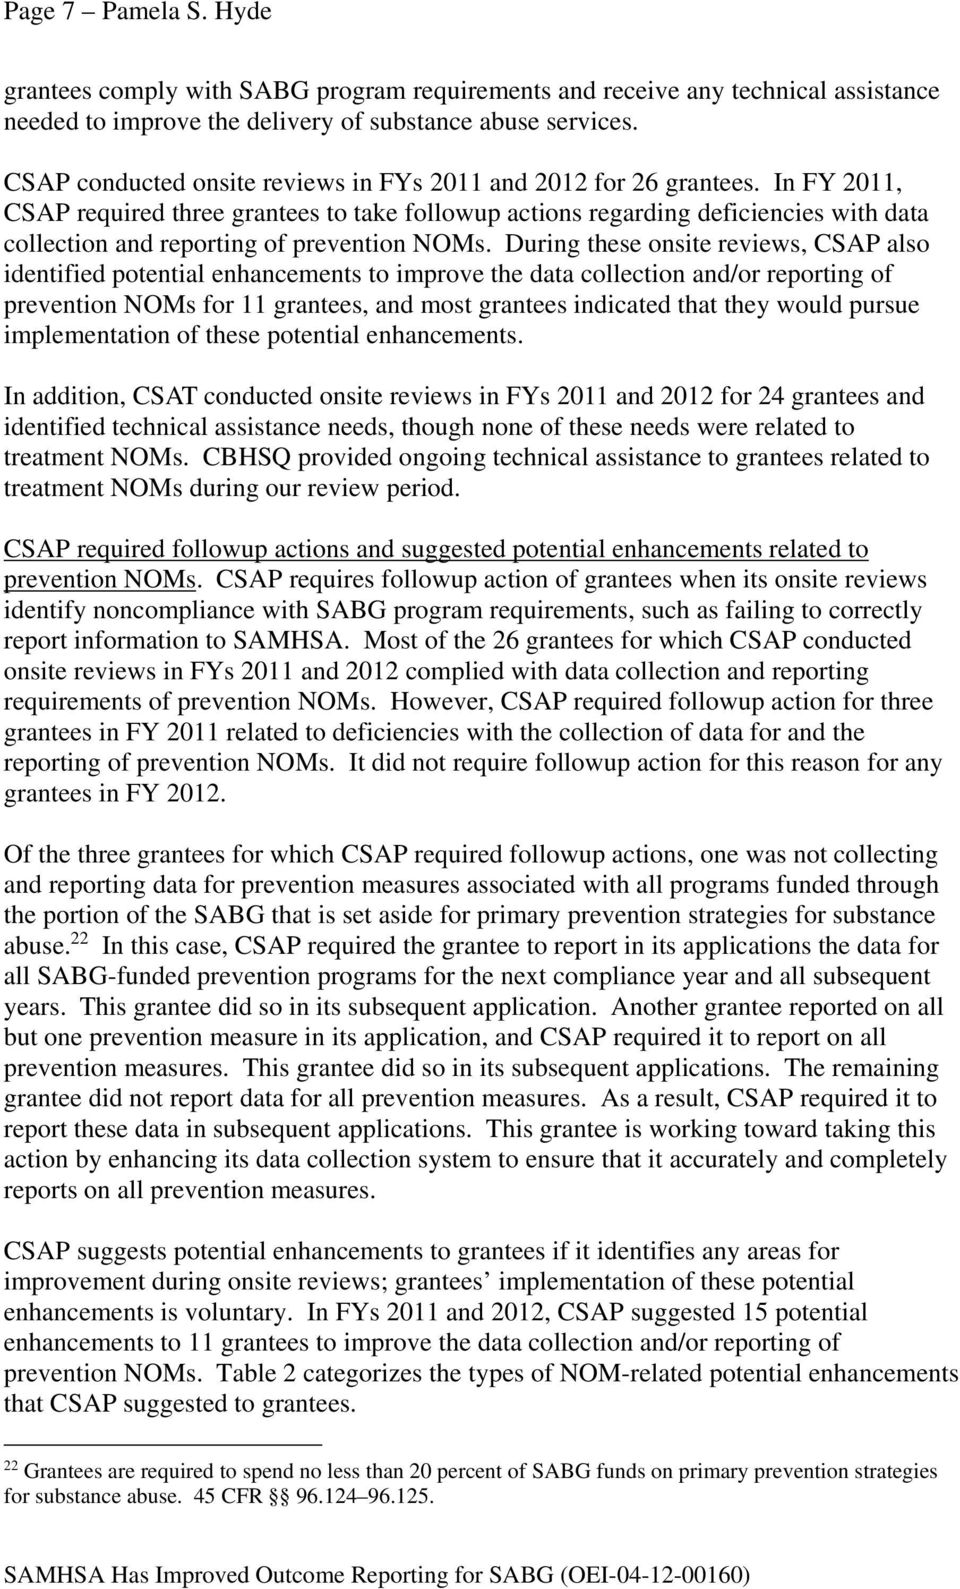 In FY 2011, CSAP required three grantees to take followup actions regarding deficiencies with data collection and reporting of prevention NOMs.